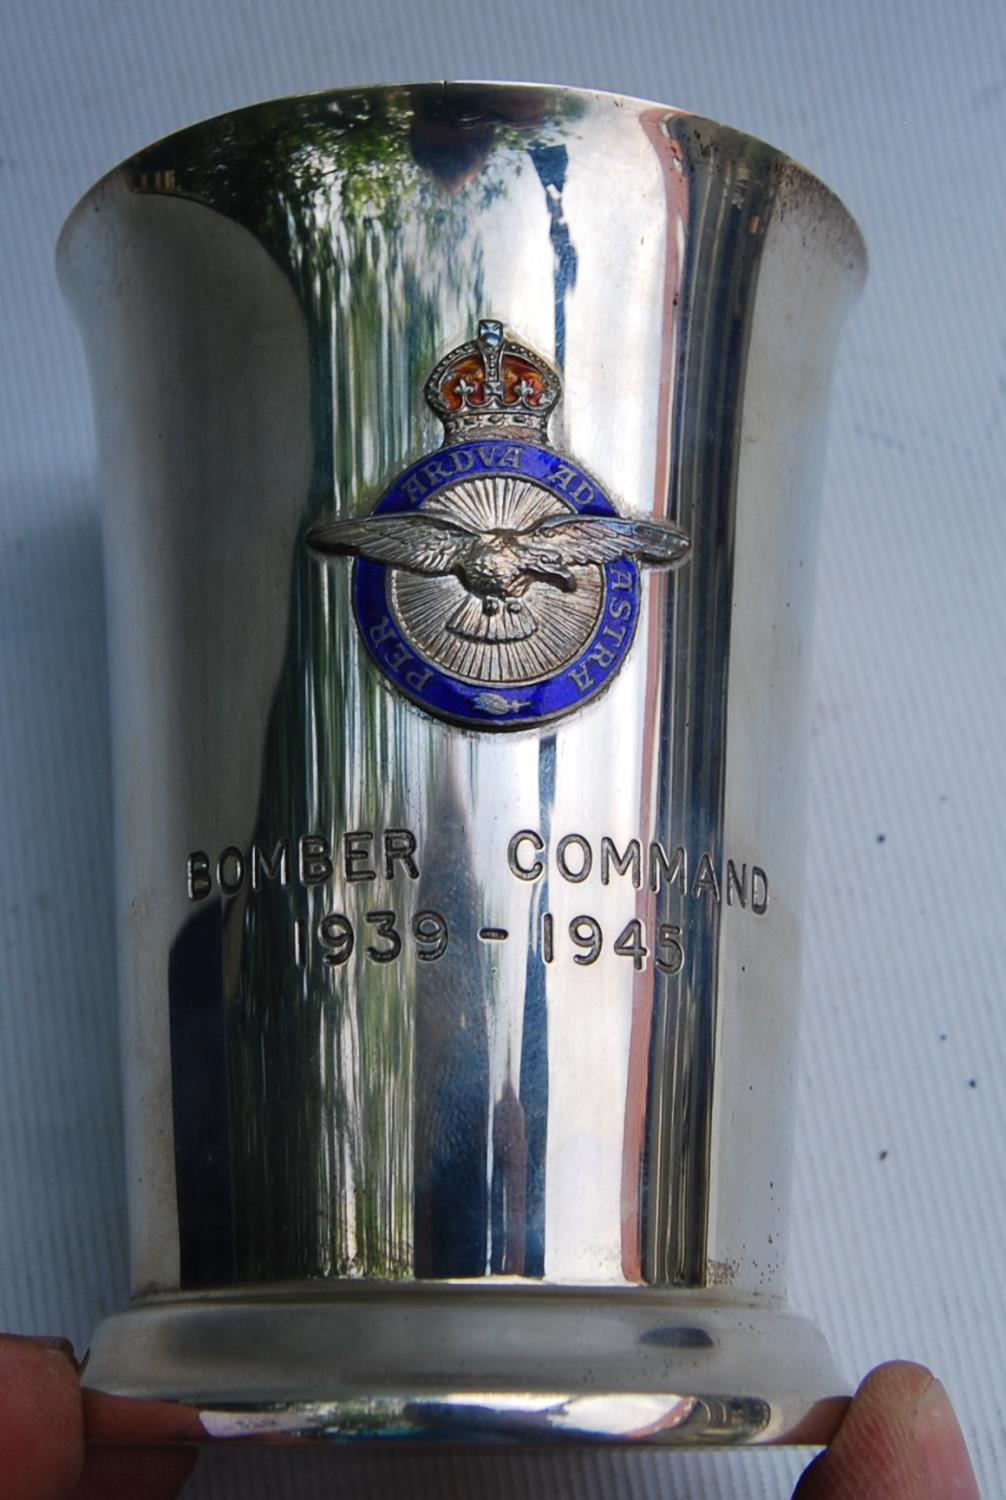 RAF silver beaker engraved, 'Bomber Command 1939-1945' with applied enamel badge and gilt lining, - Image 5 of 5